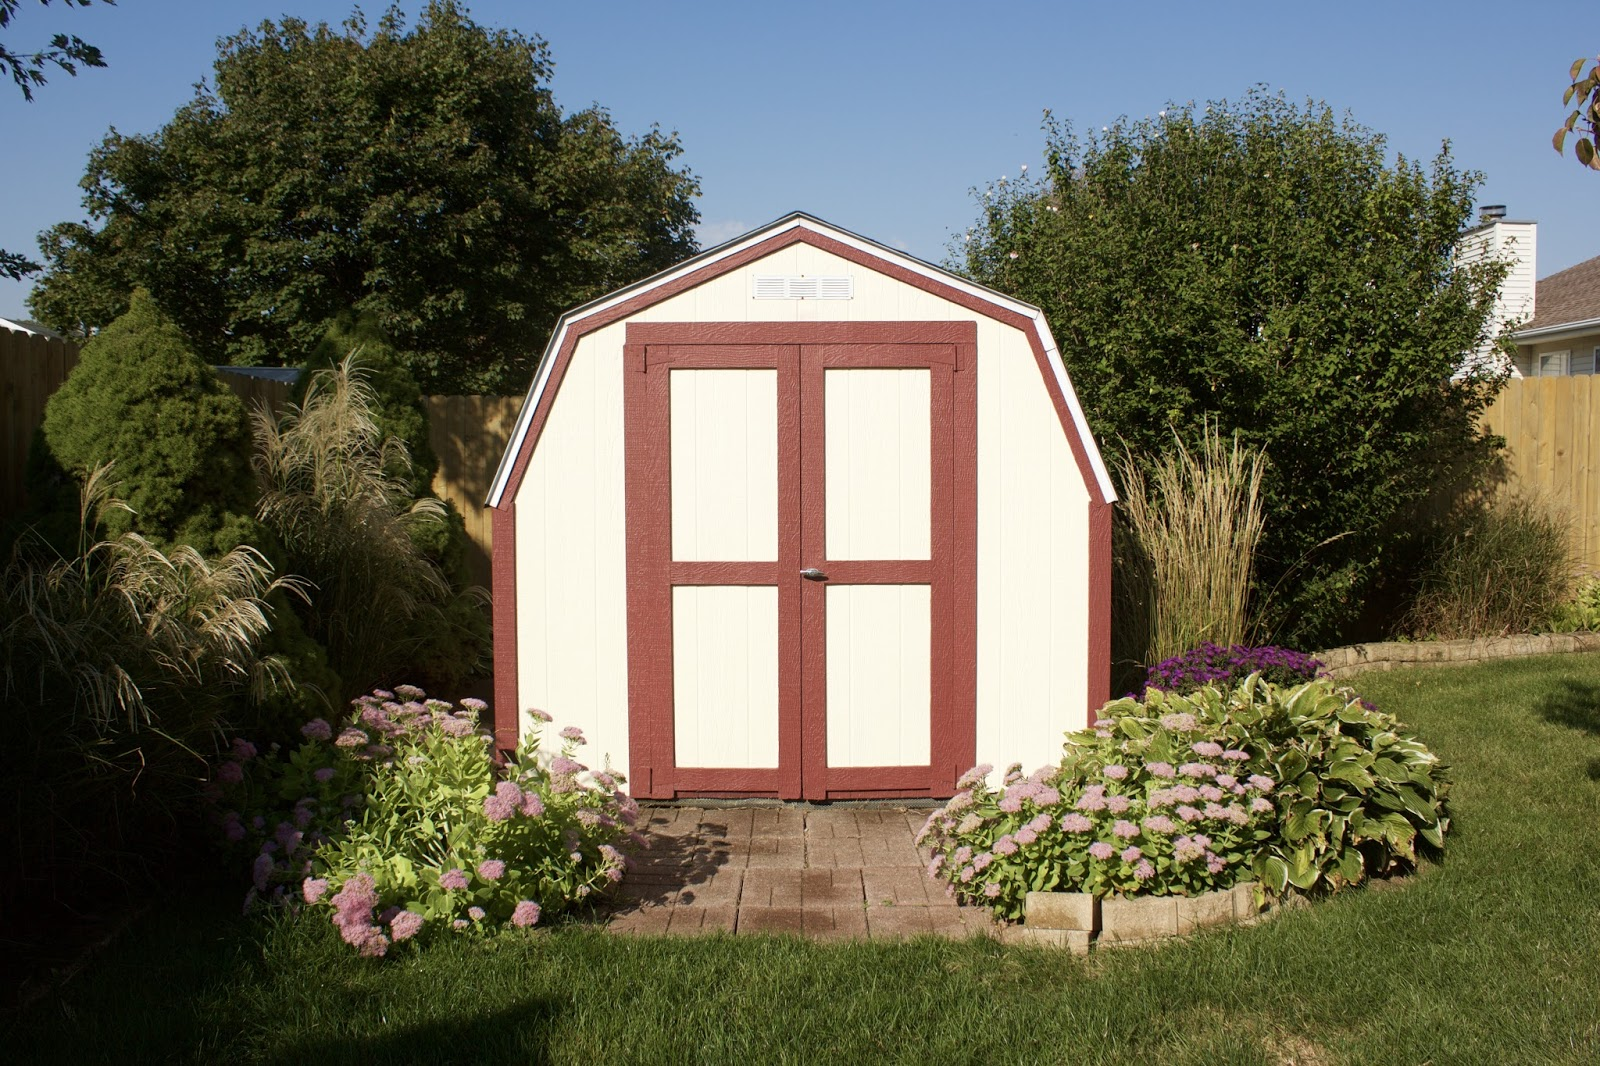 landscaping around a shed